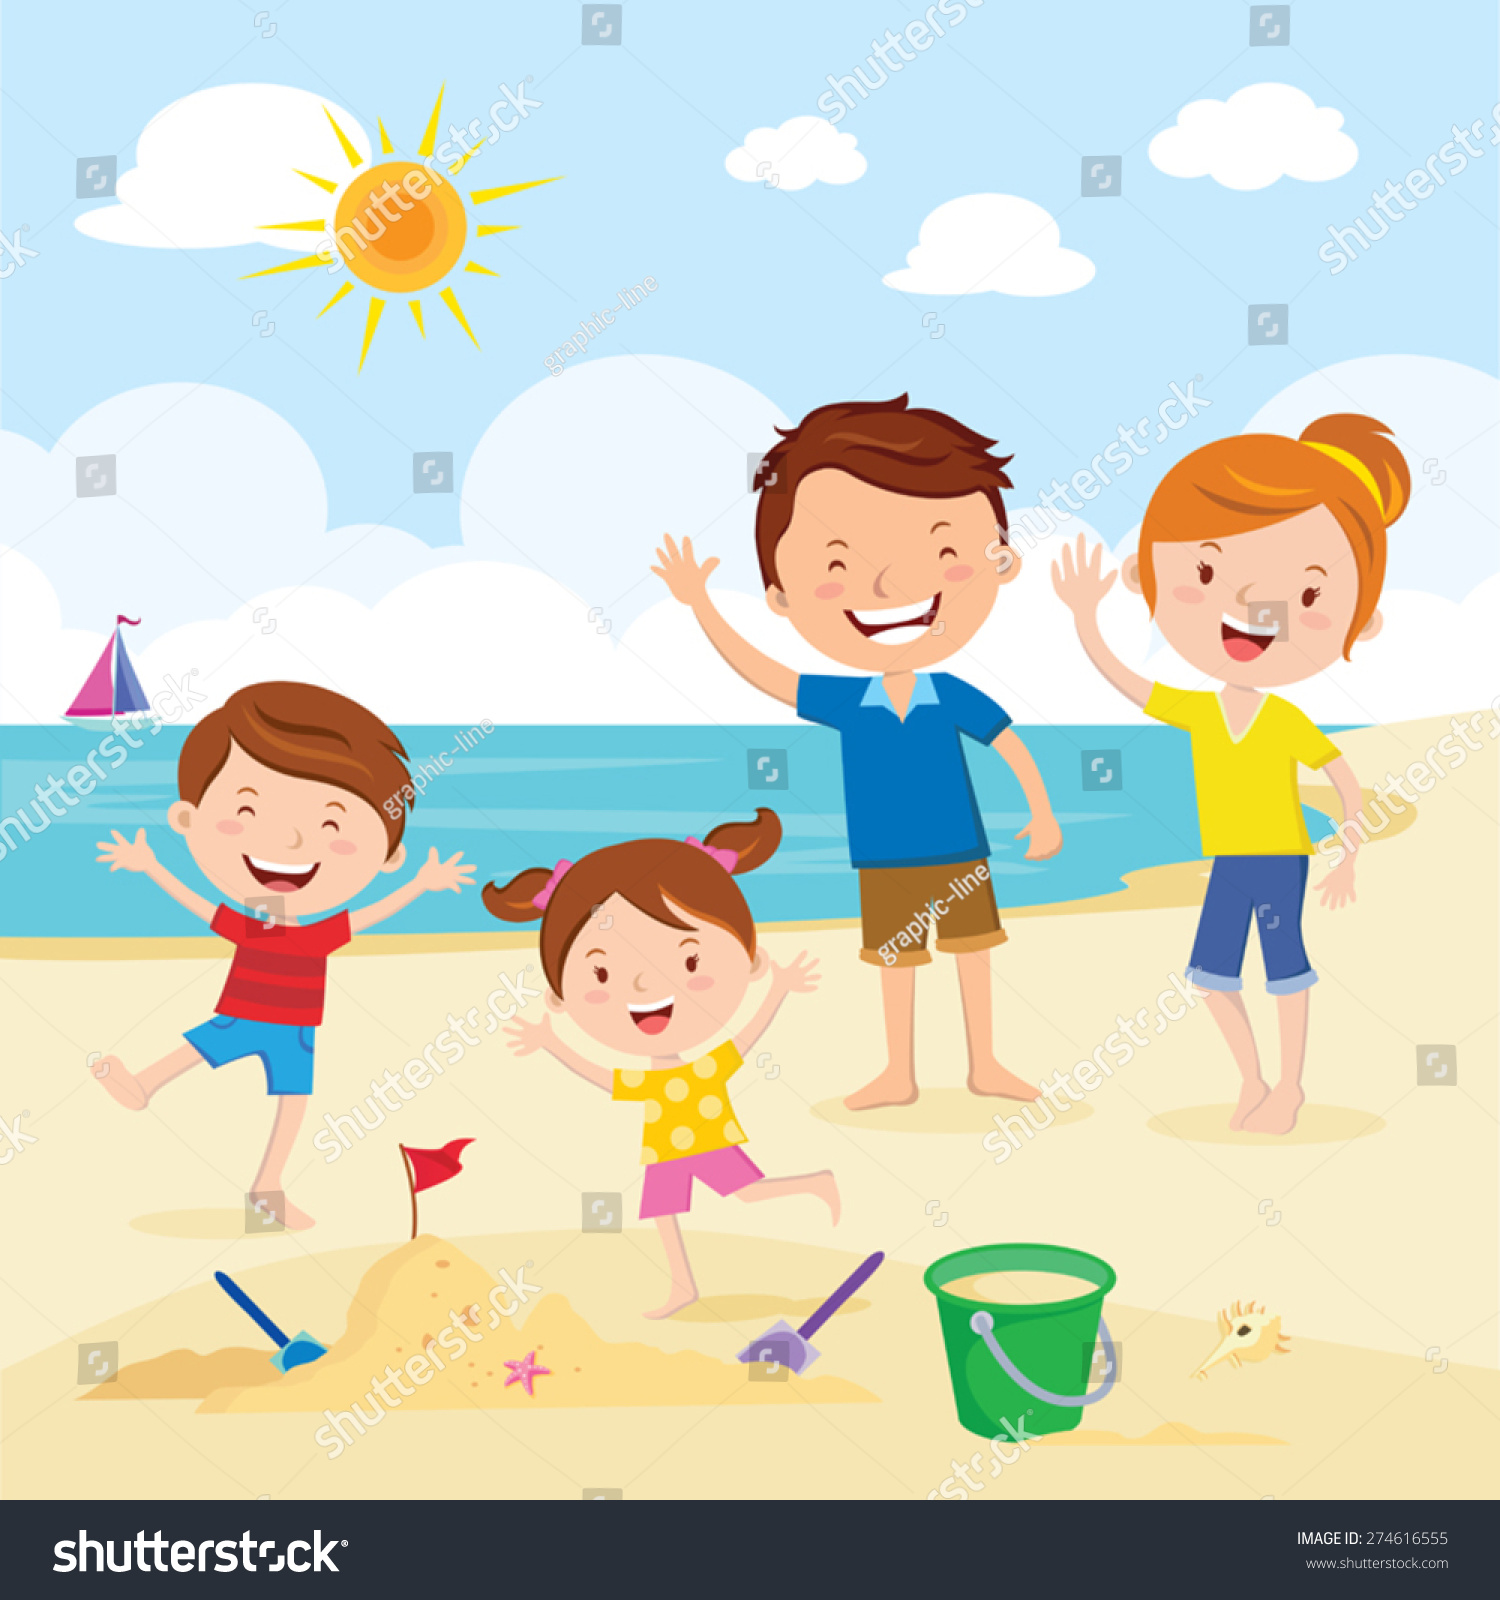 Family Pictures In The Beach: Happy Family Beach Family Having Fun Stock Vector